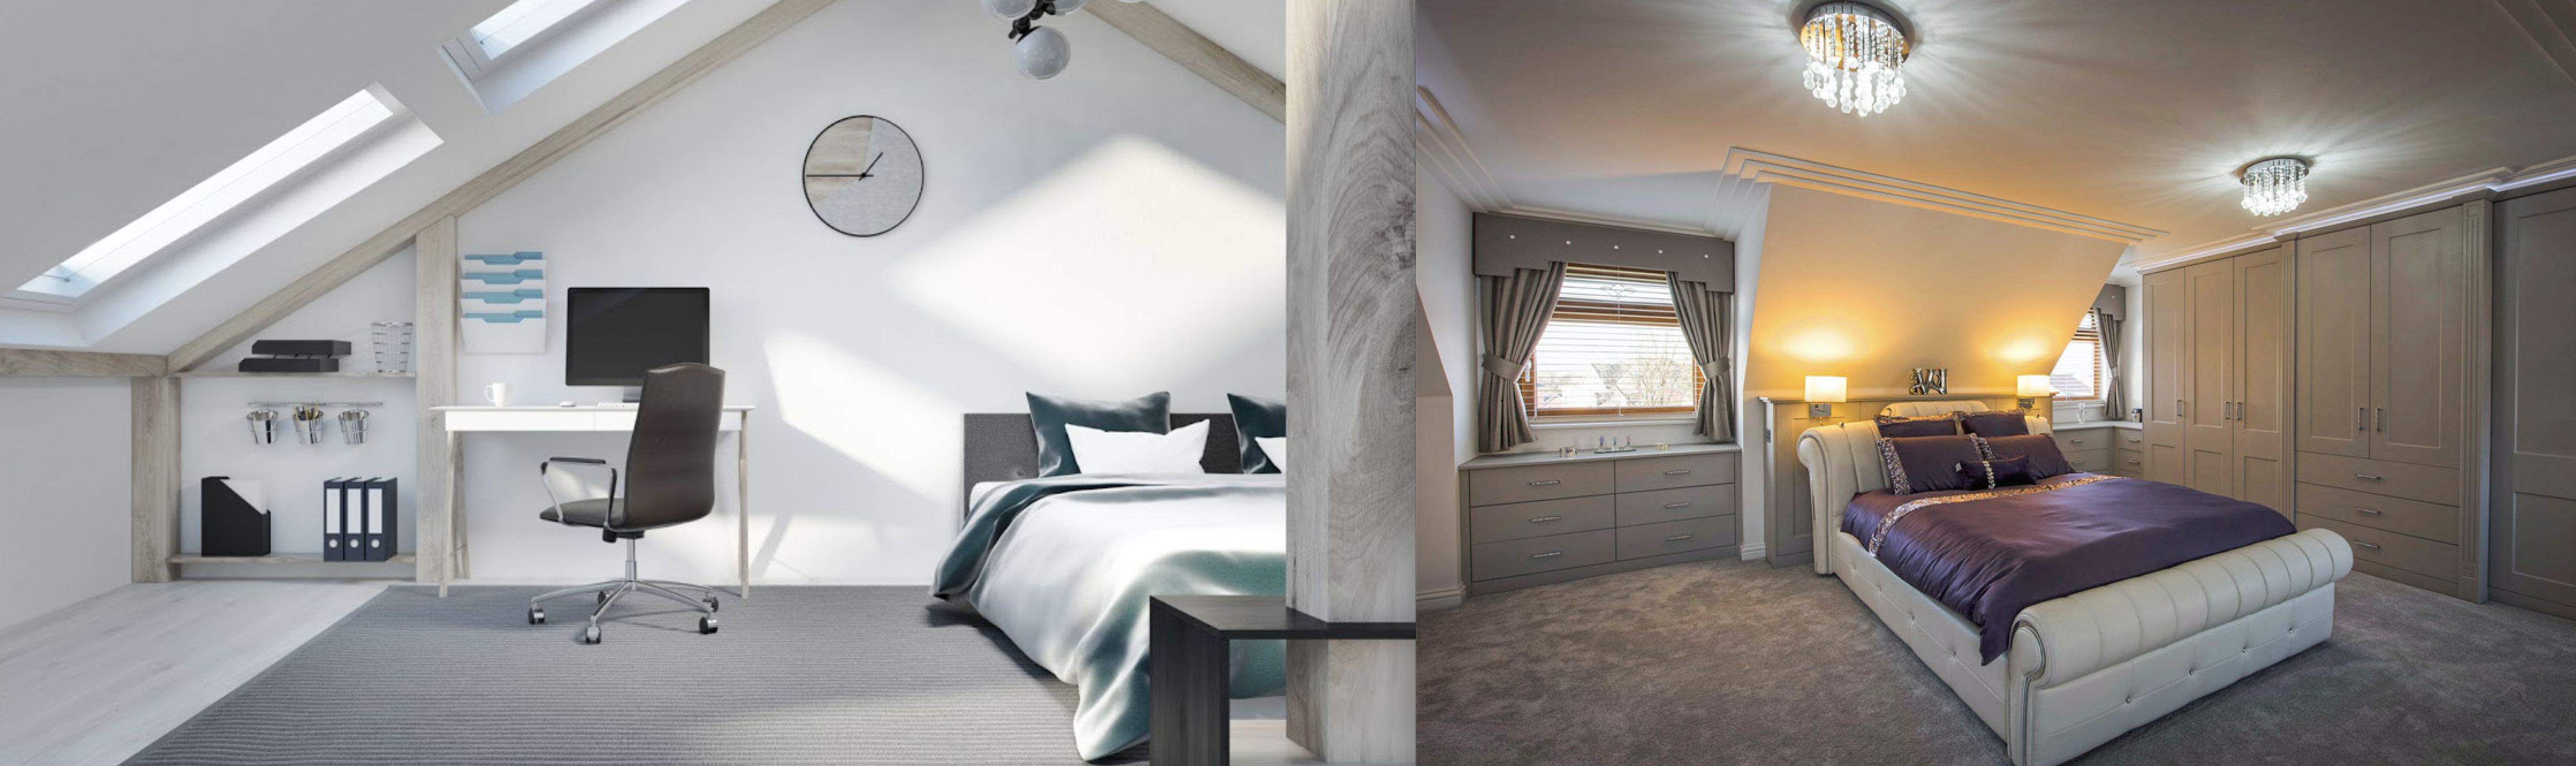 Beautiful Dormer loft conversion in Radcliffe, creating a new master bedroom with private bathroom, walk in wardrobe and stunning new oak staircase with Velux polyurethane SK06 GPU windows.